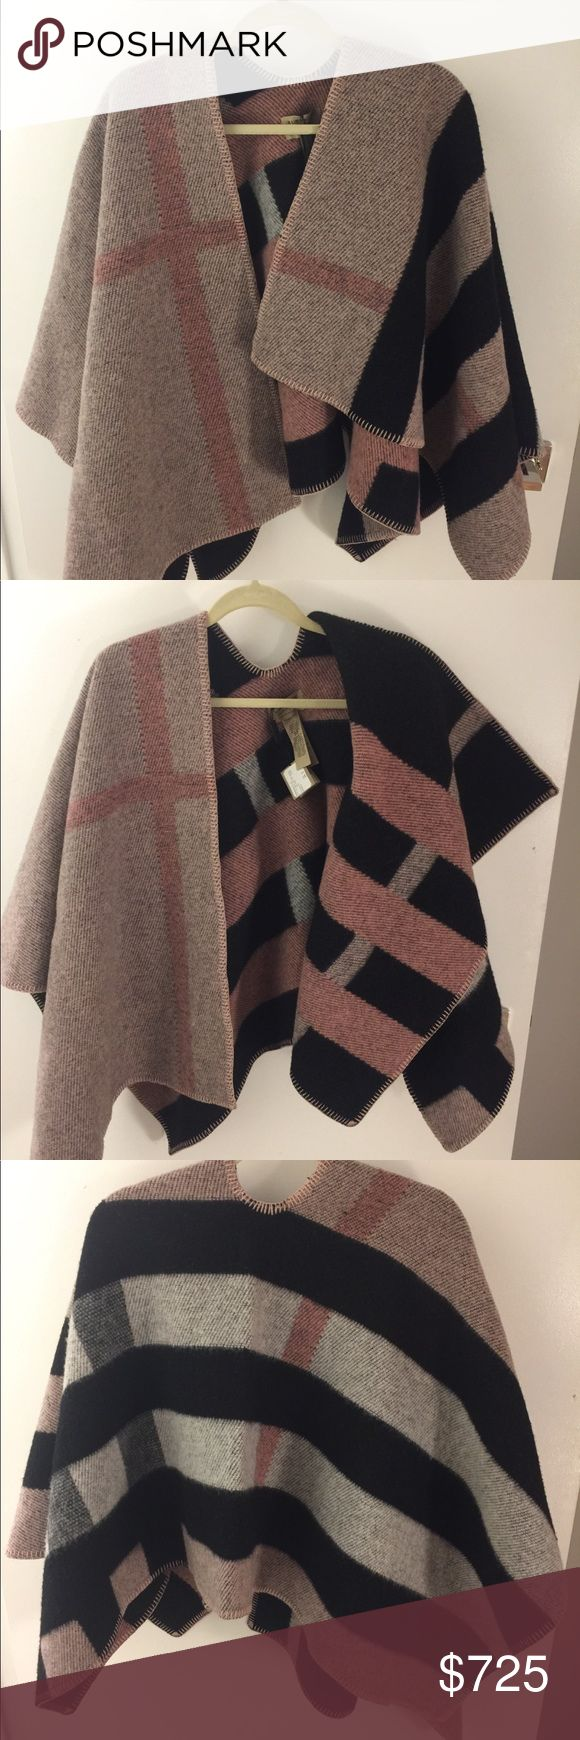 NWT Burberry Mega Check Cape/Poncho Wool Cashmere New with tags. Never worn. Pet free, smoke free house. One size. Made in Scotland. Retail price $1495 Burberry Jackets & Coats Capes